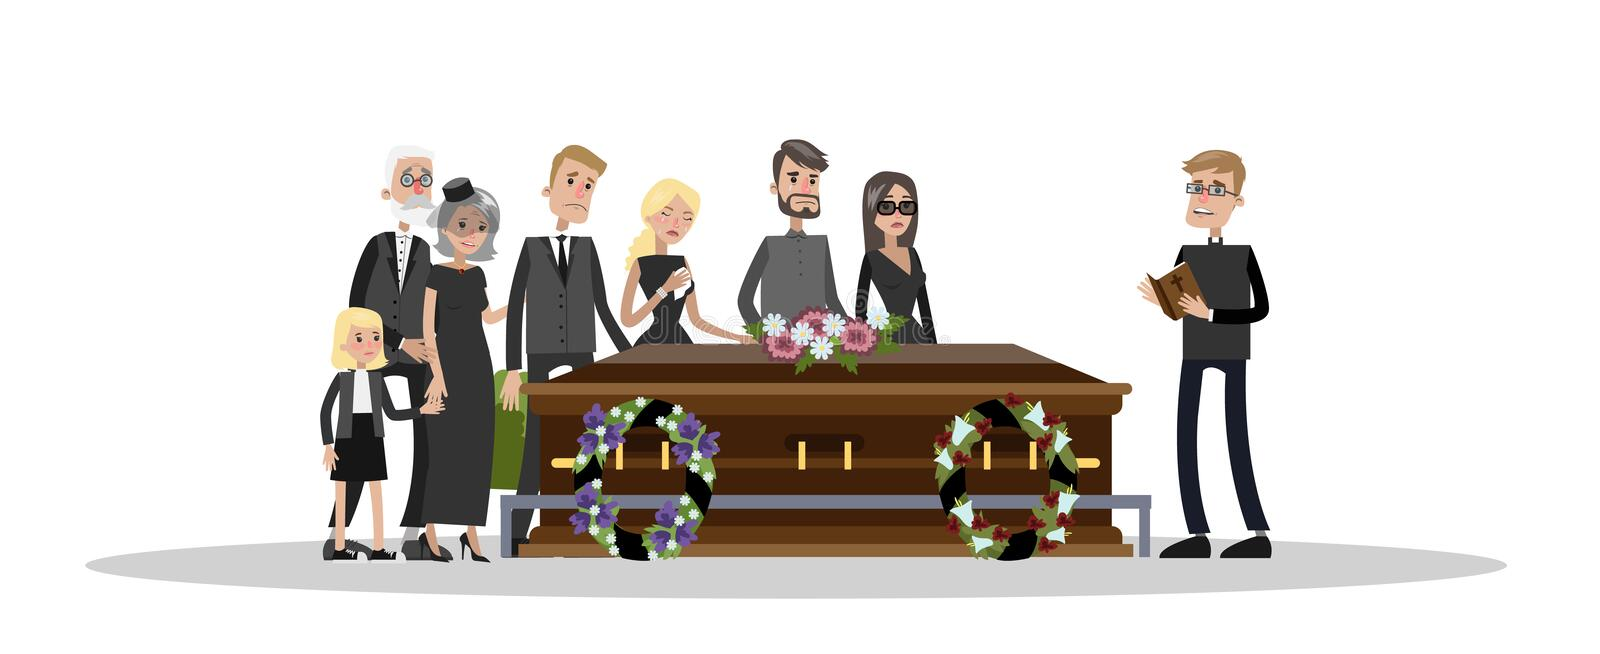 Funeral ceremony at the cemetery. Funeral ceremony on the cemetery. Sad people in black clothes standing with flowers and wreaths around coffin. Isolated vector royalty free illustration